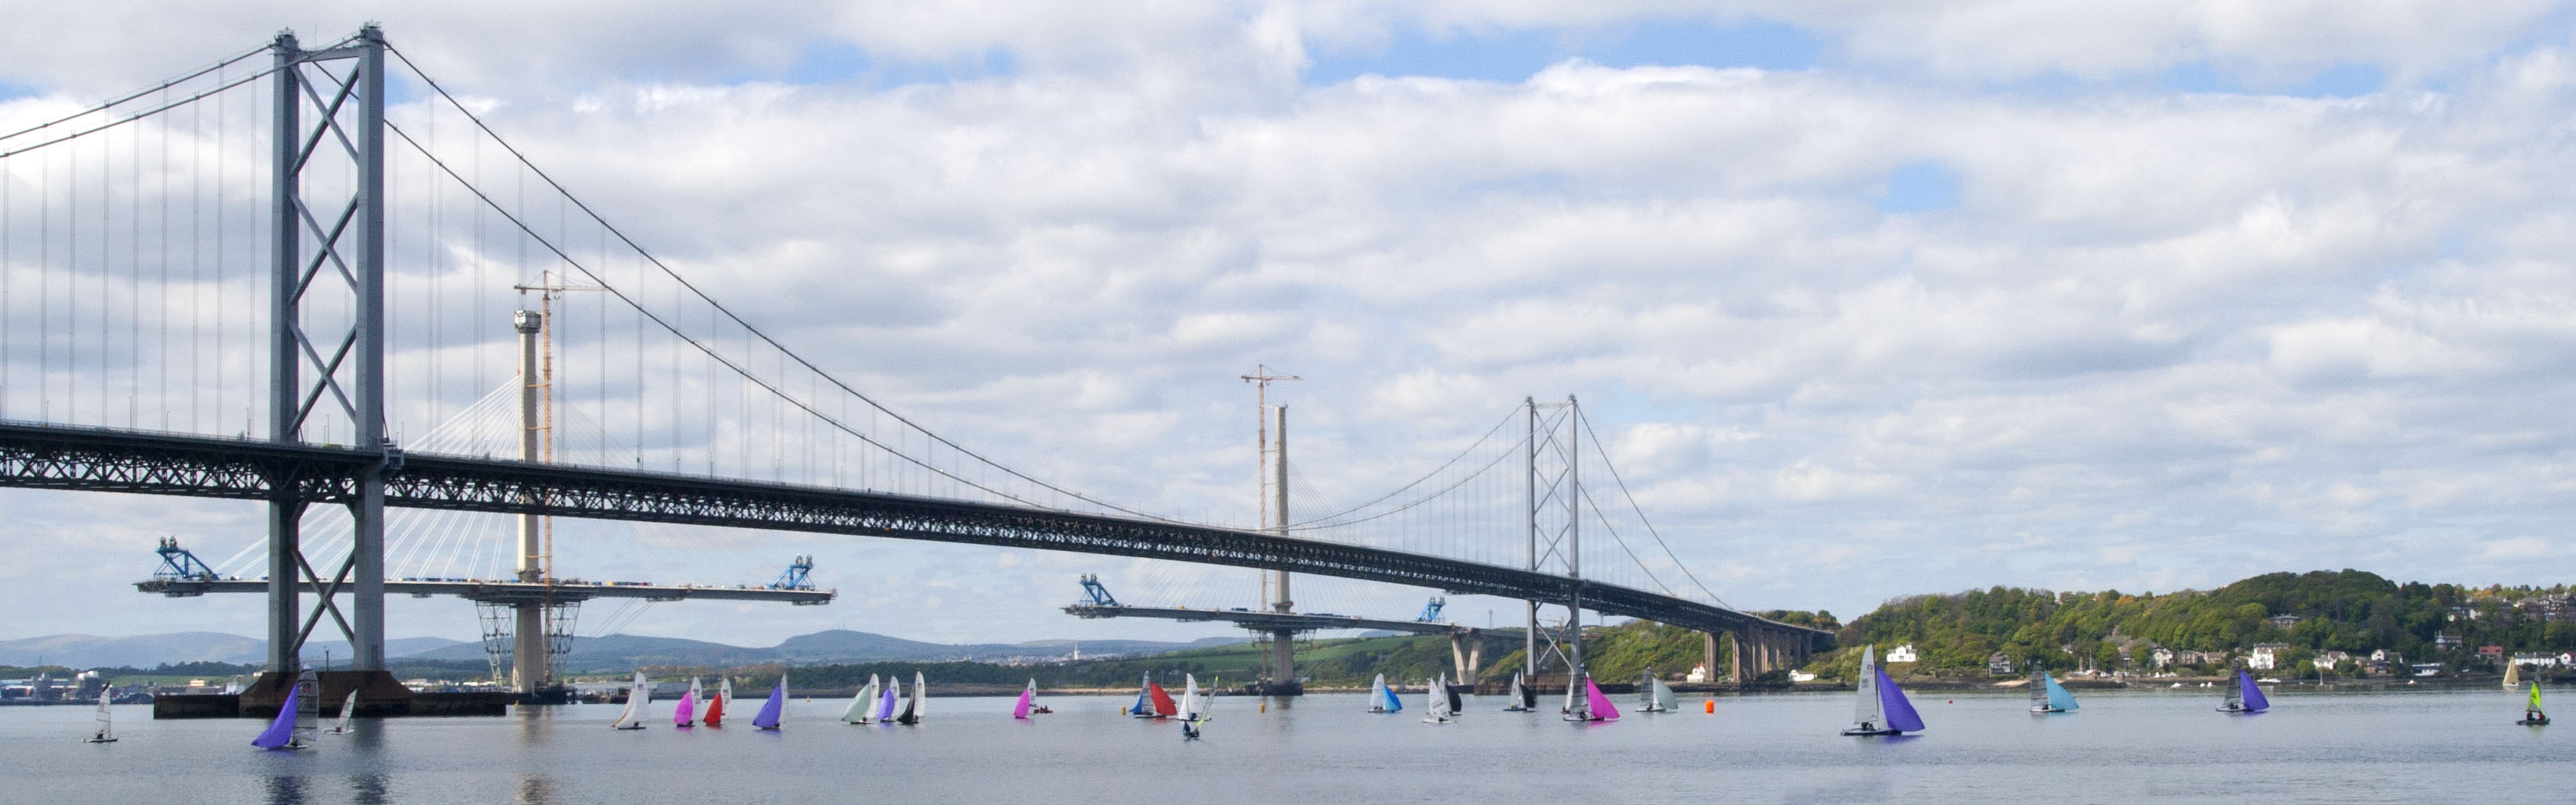 Forth Road Bridge, Edinburgh - 3002